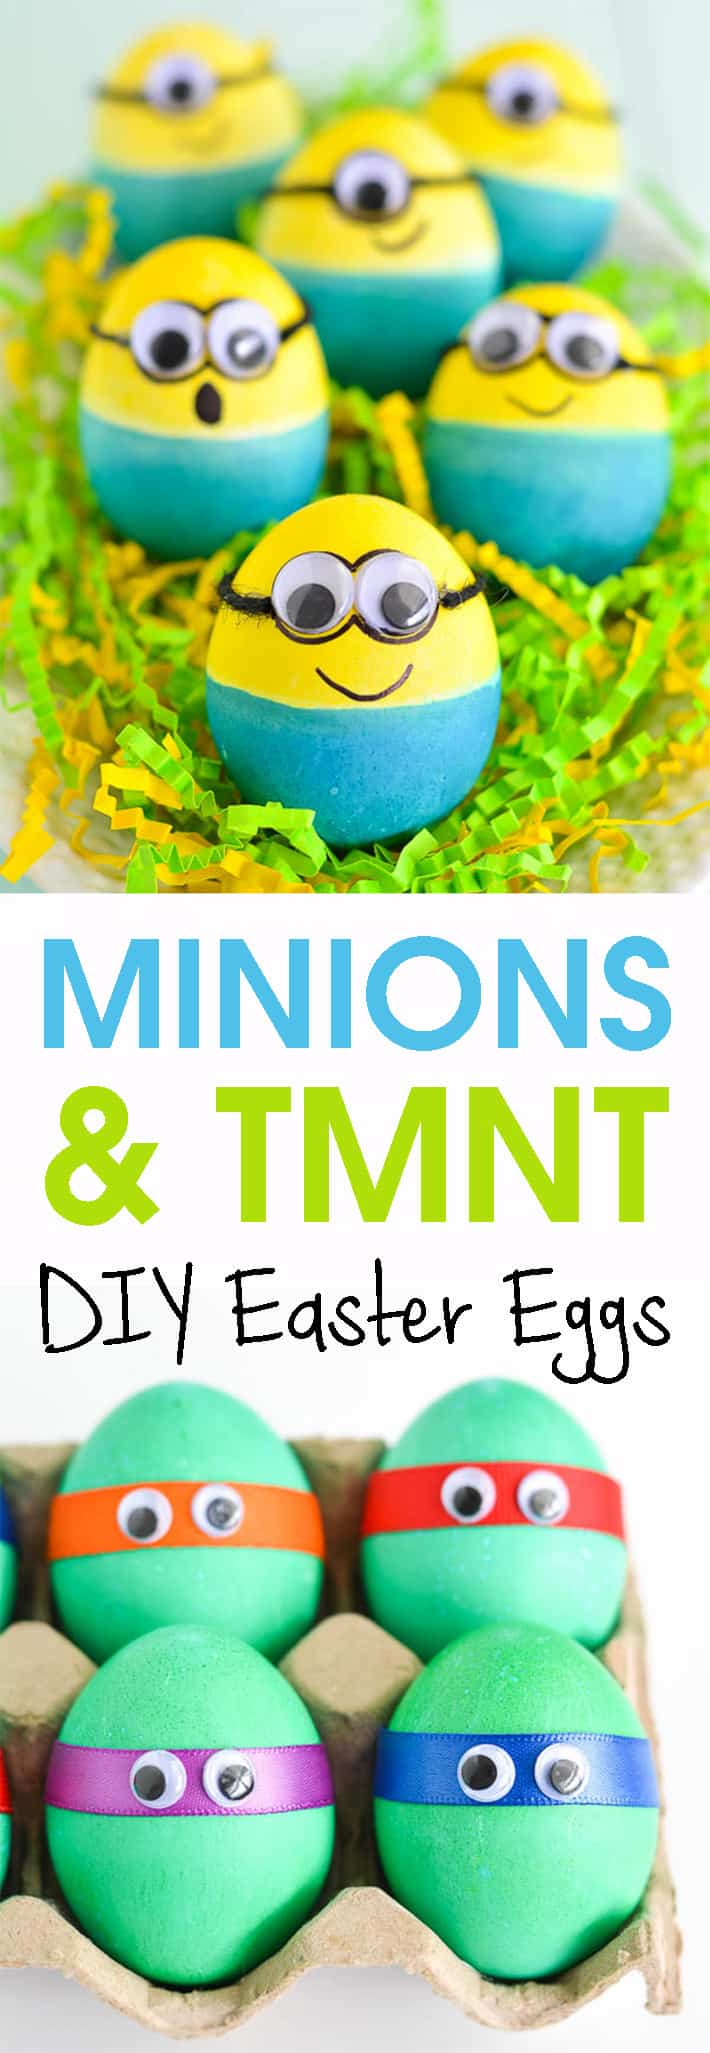 DIY: Minion & TMNT Easter Eggs